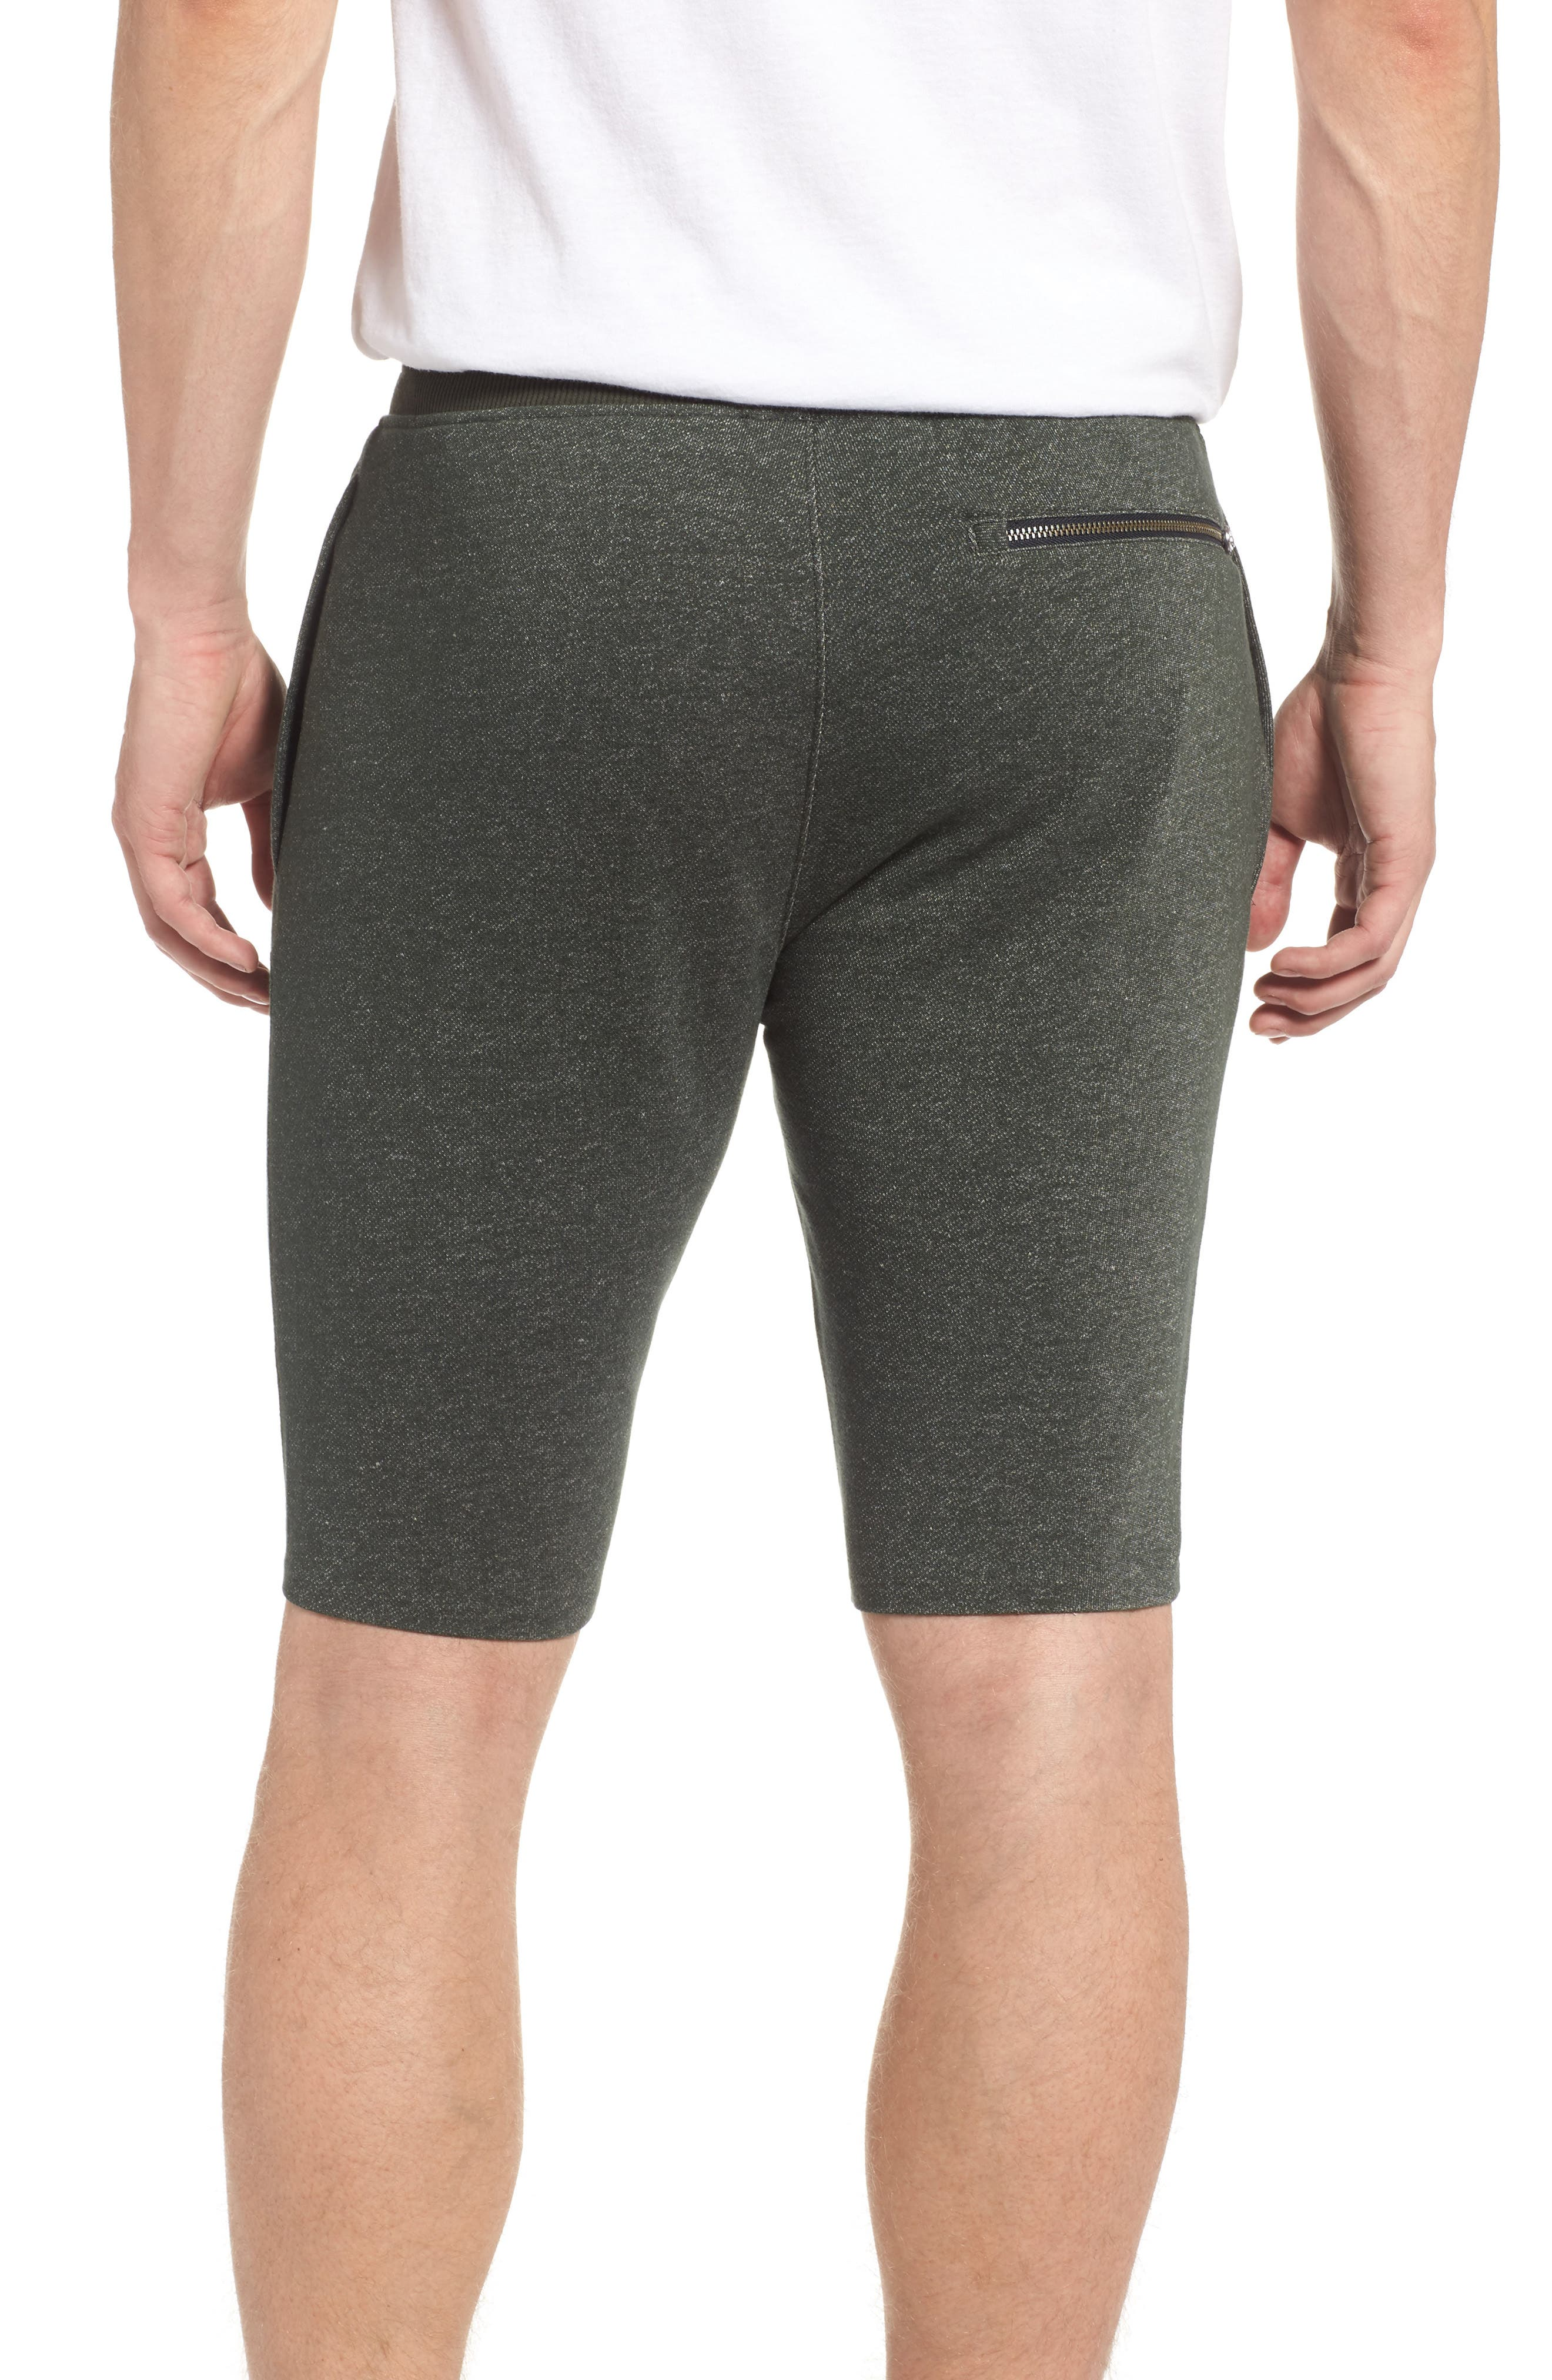 Terry Knit Athletic Shorts,                             Alternate thumbnail 2, color,                             Artillery Green / Black